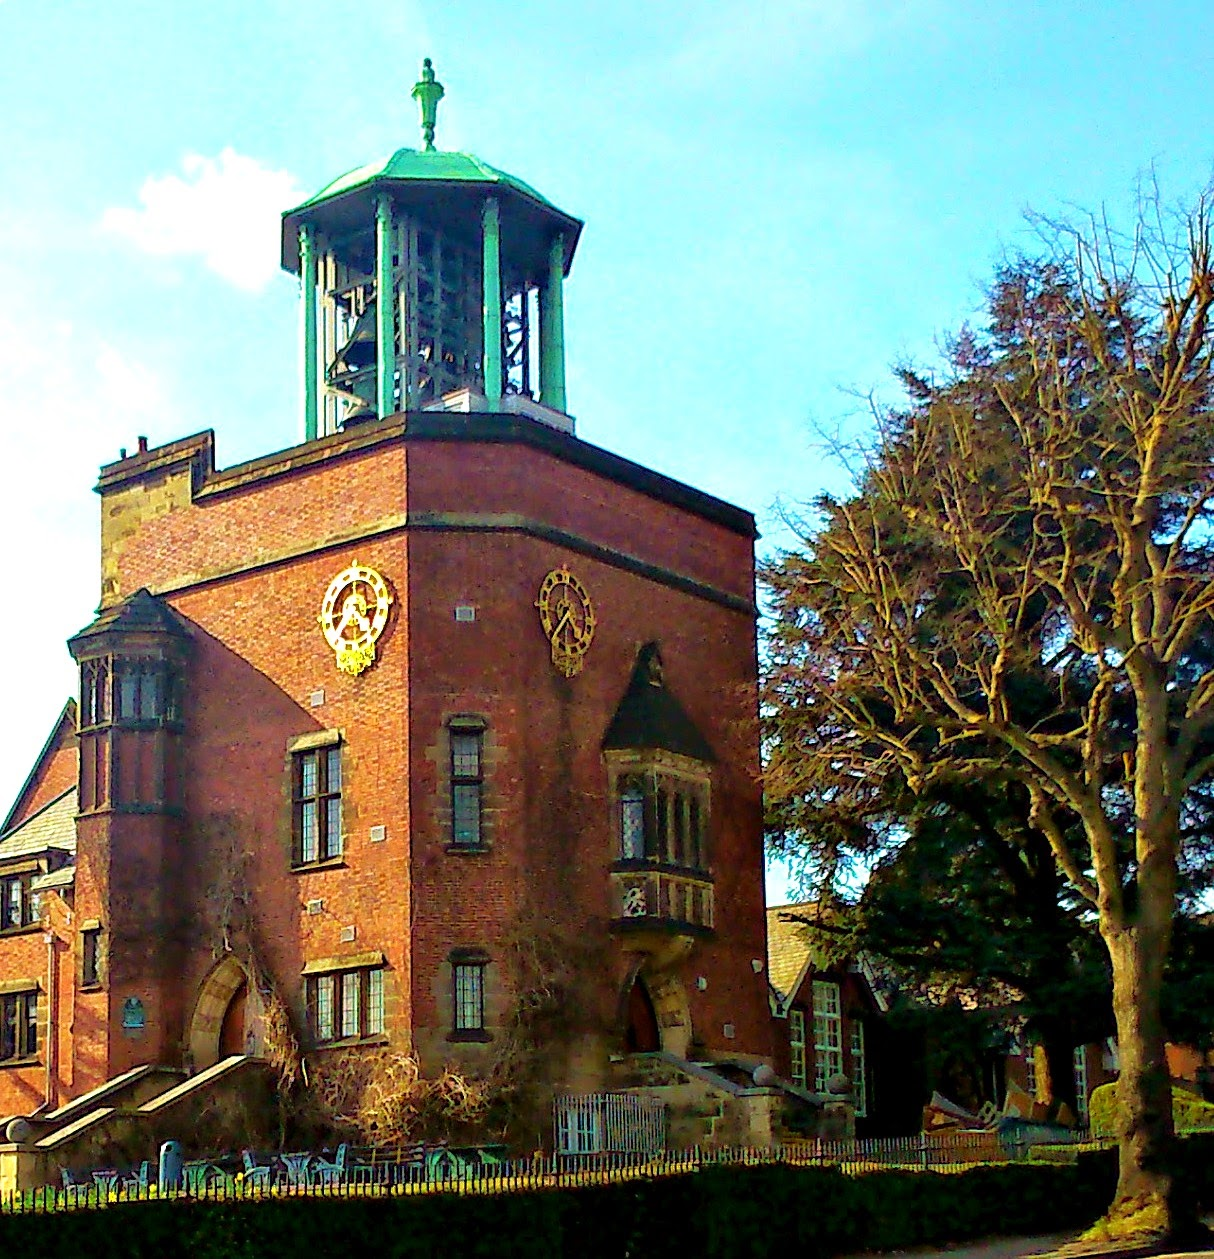 a large brick tower with a huge bell tower on the top, set against a pale blue sky